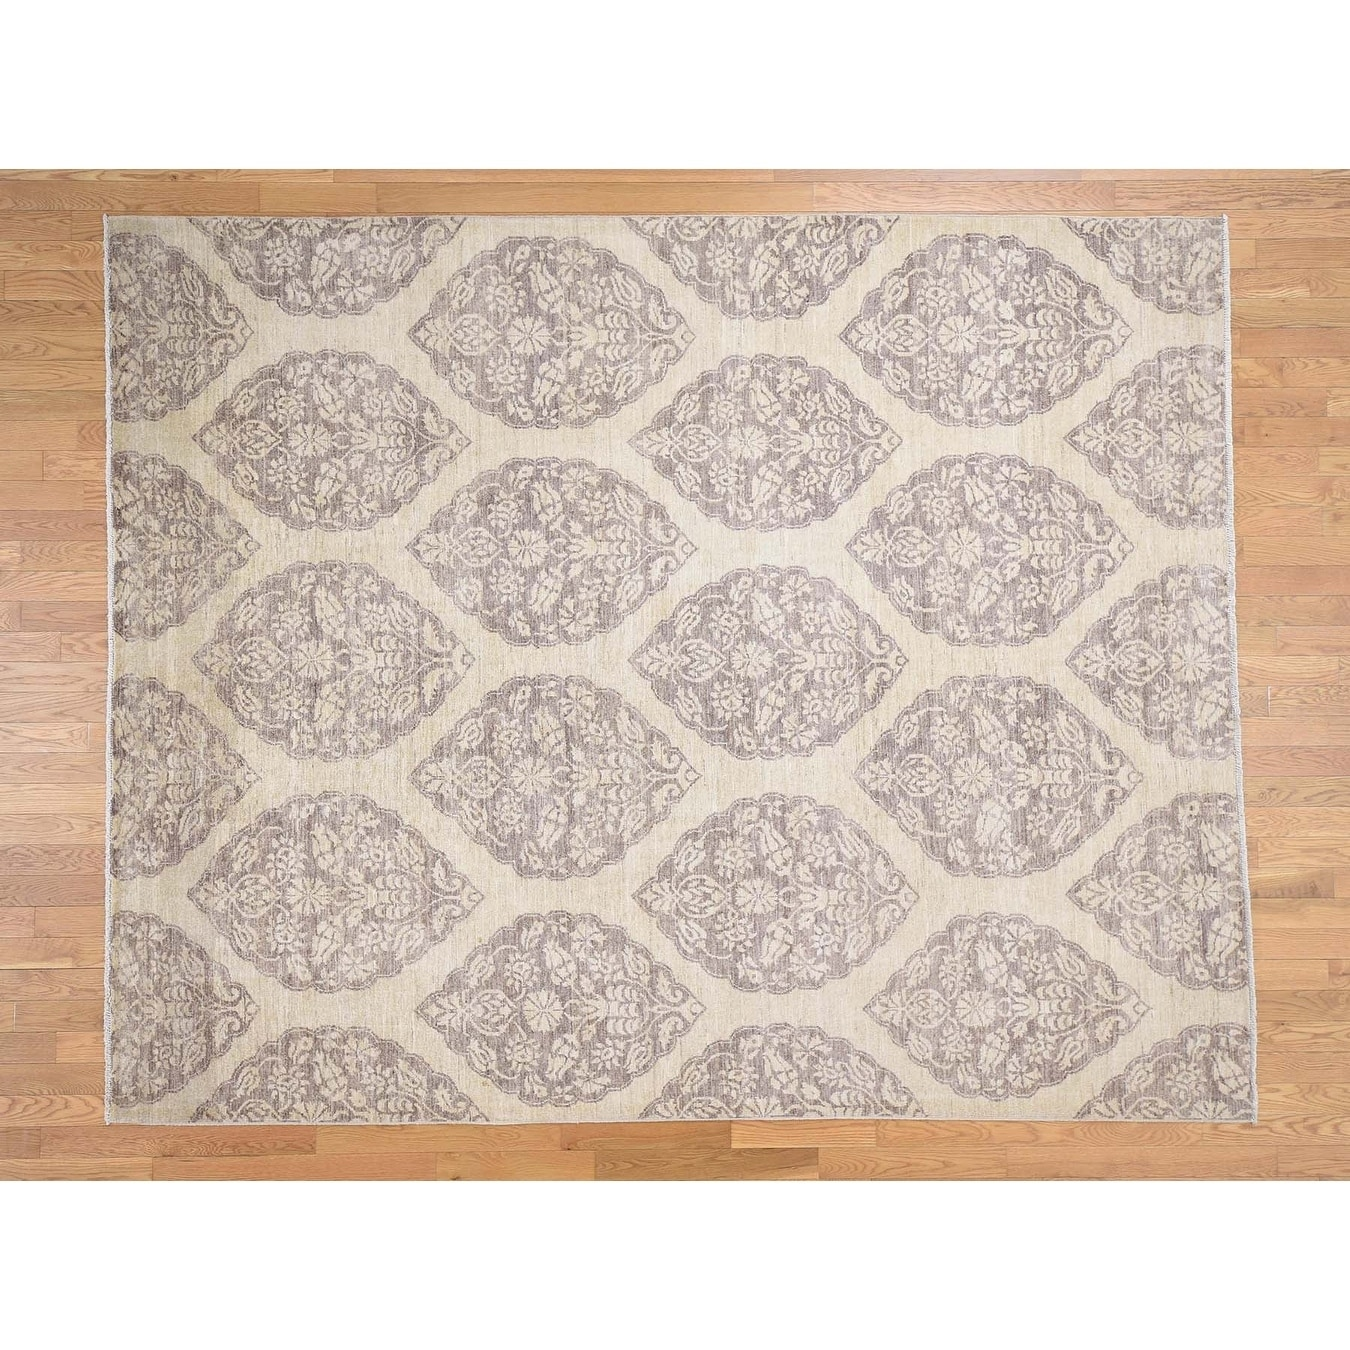 Hand Knotted Beige Oushak And Peshawar with Wool Oriental Rug - 81 x 102